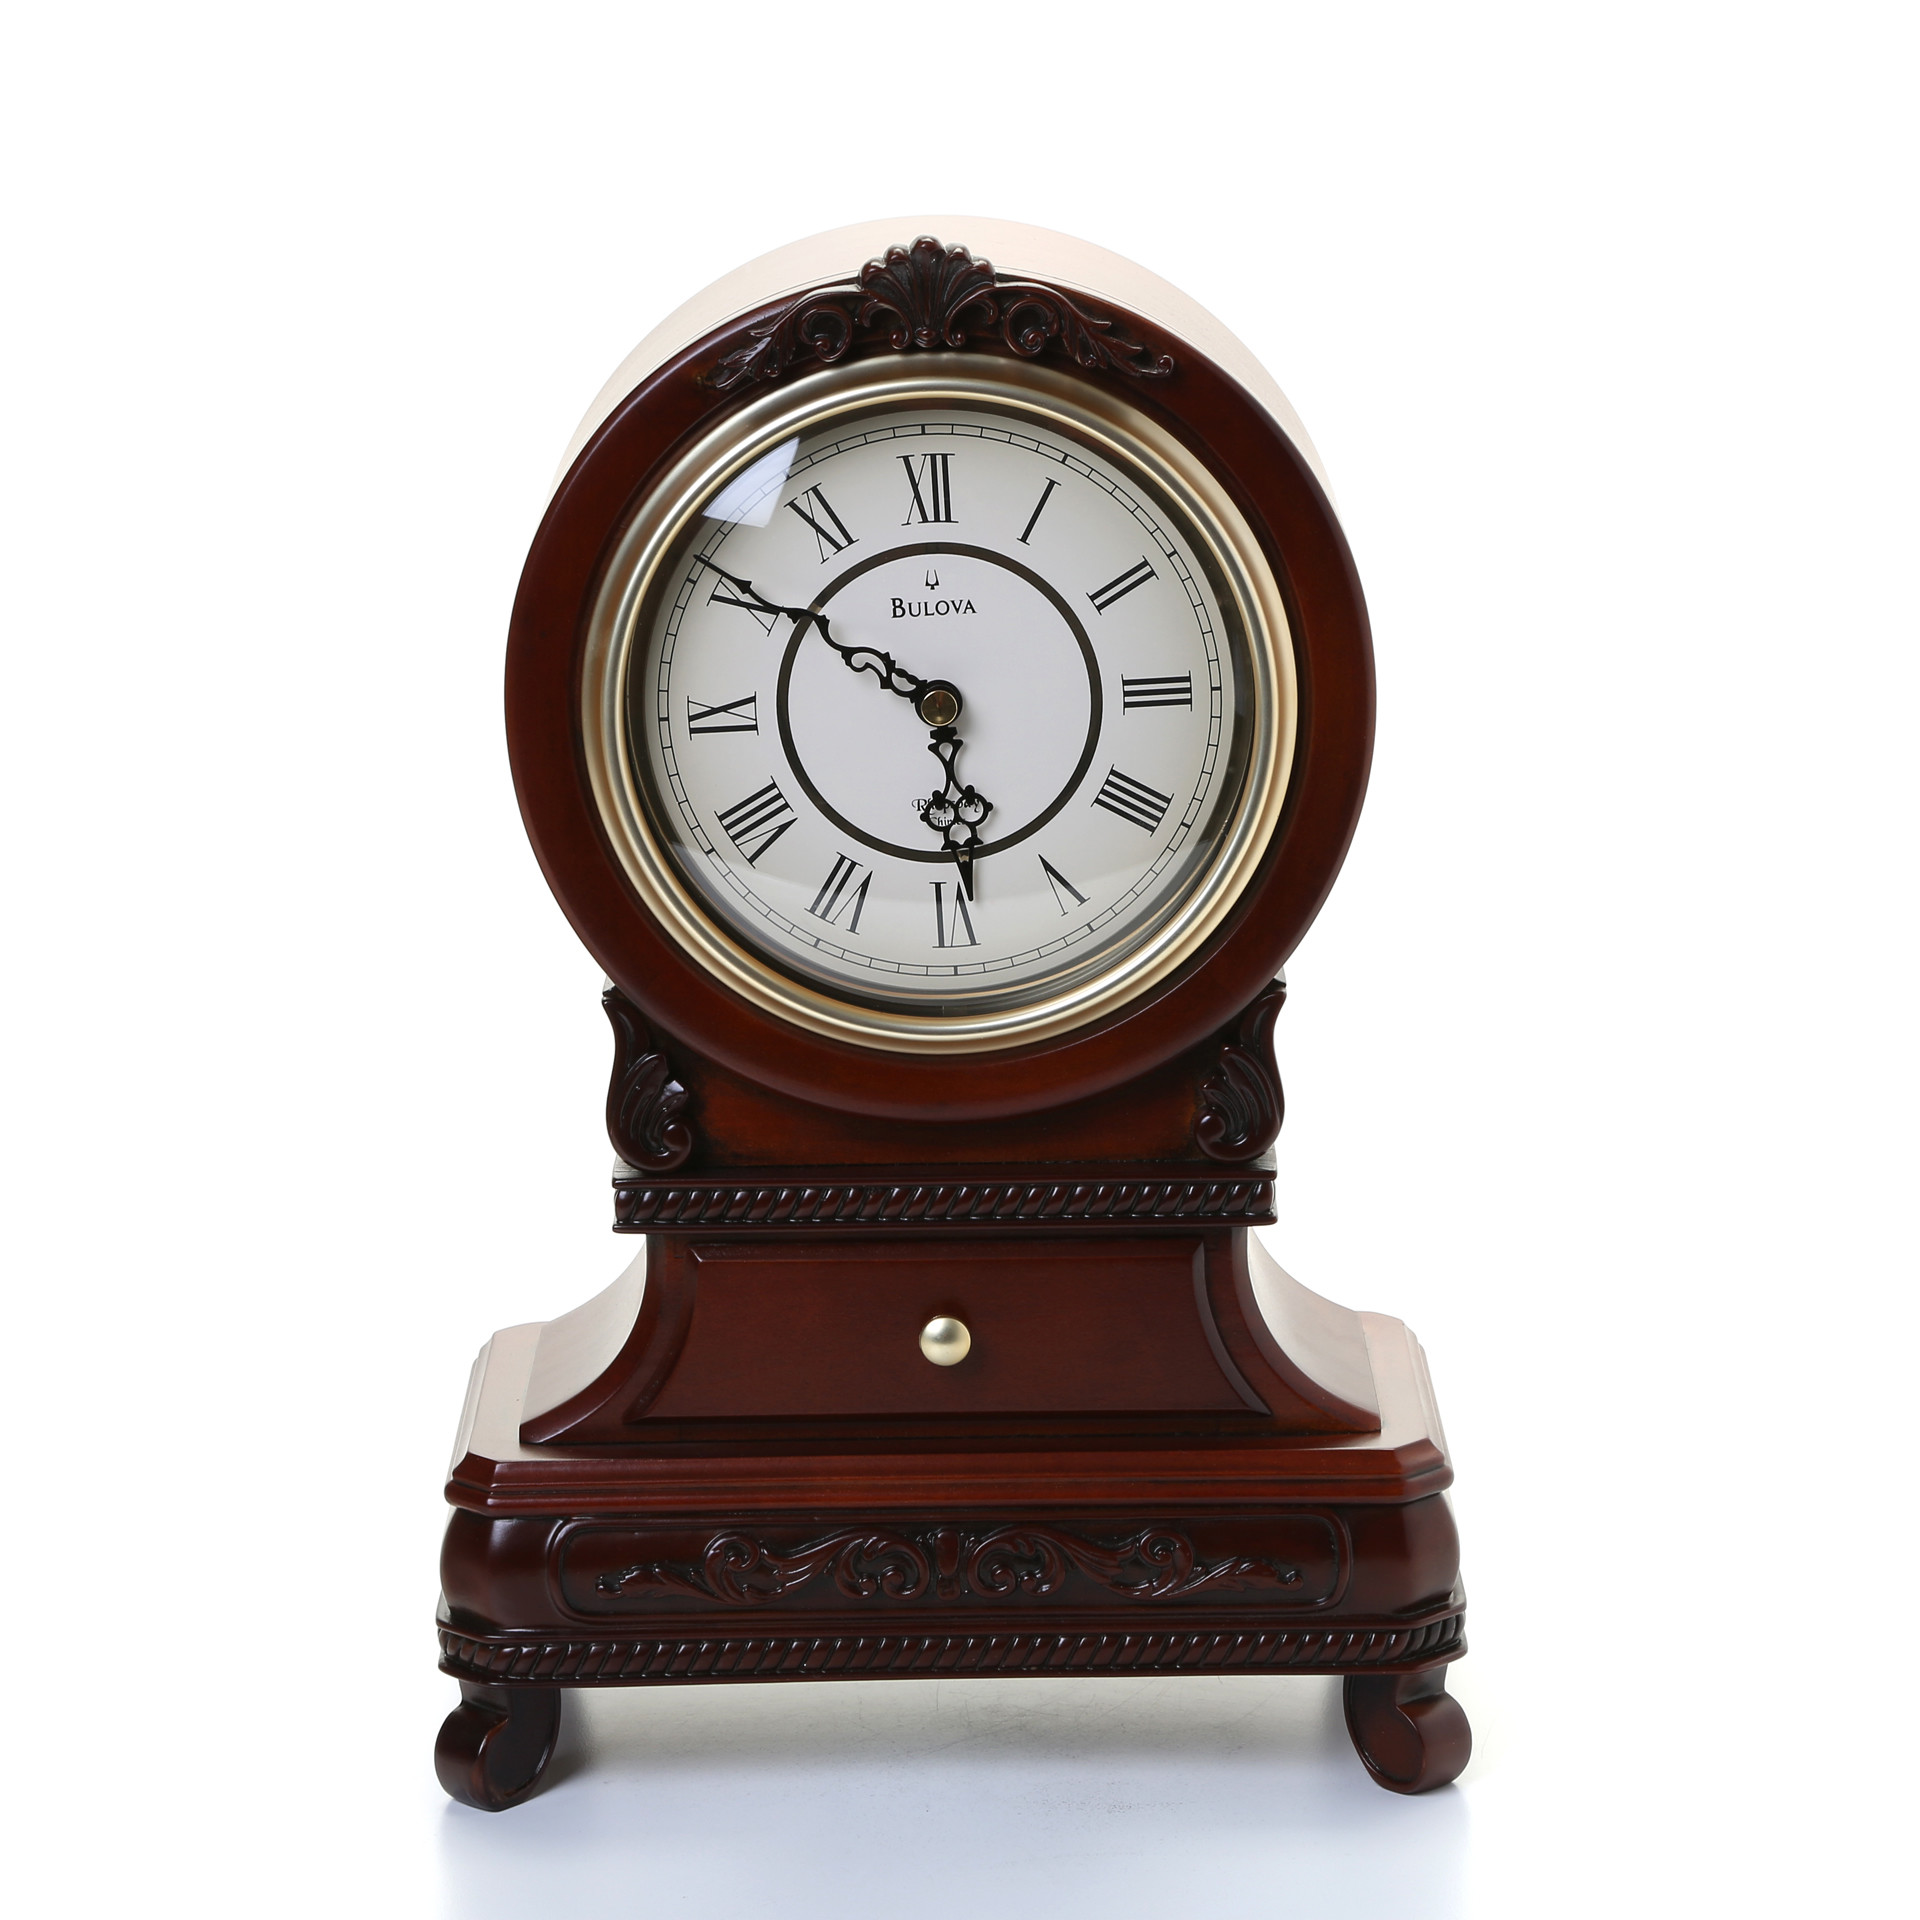 Bulova Mantel Clock | Mantel Clocks for Sale | Bulova Clocks Value